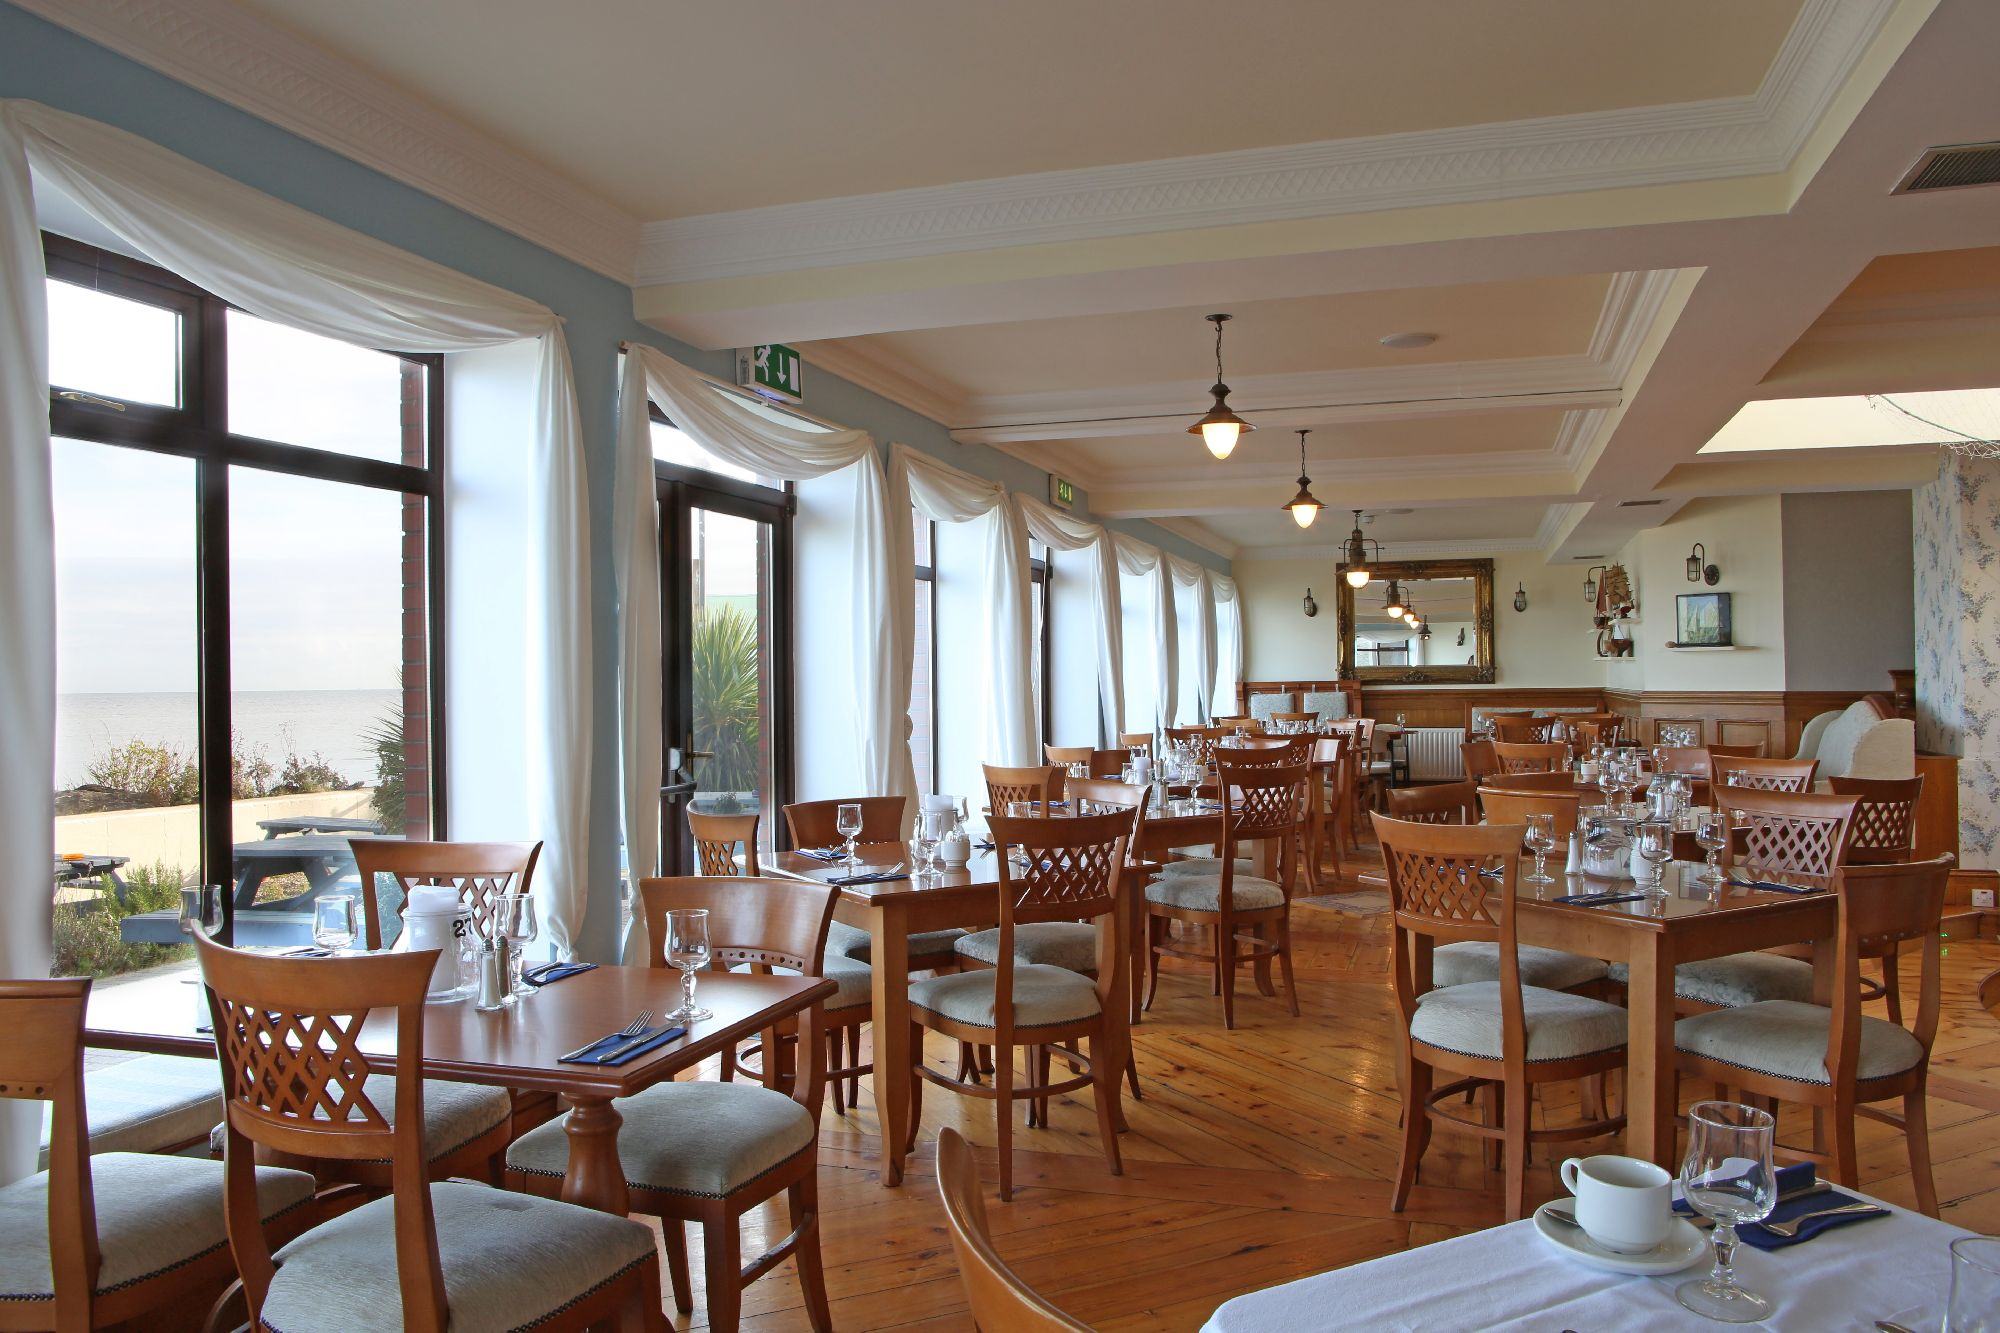 Interior of the Linn Duachaill Destination Restaurant